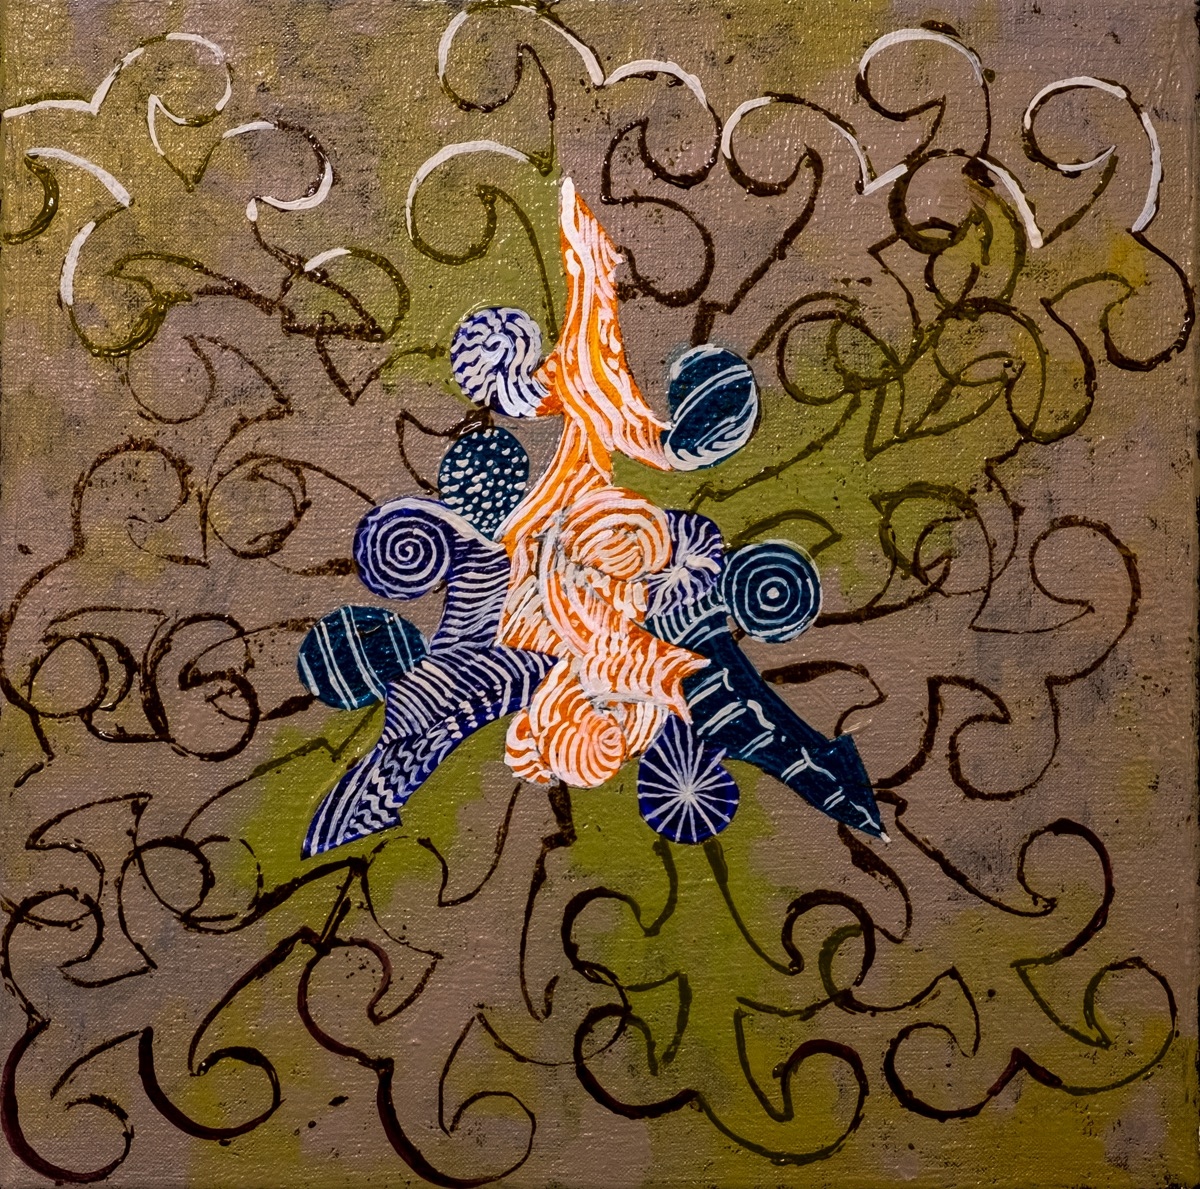 "Small Creature Series 12"" x 12"" 2019 Oil on Canvas REF# 2019/14"